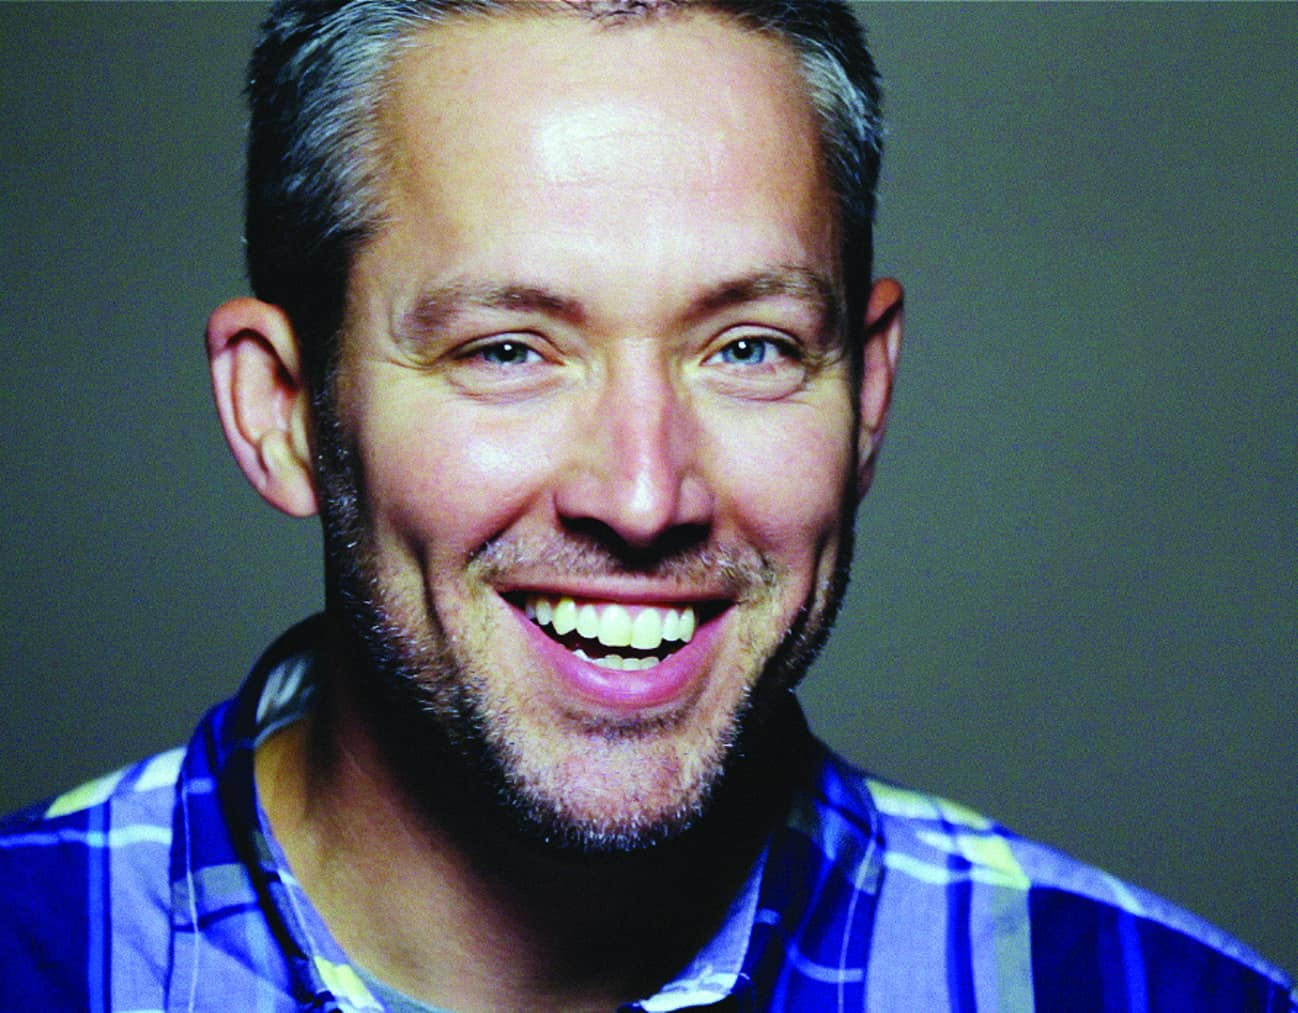 J.D. GREEAR: In his own words